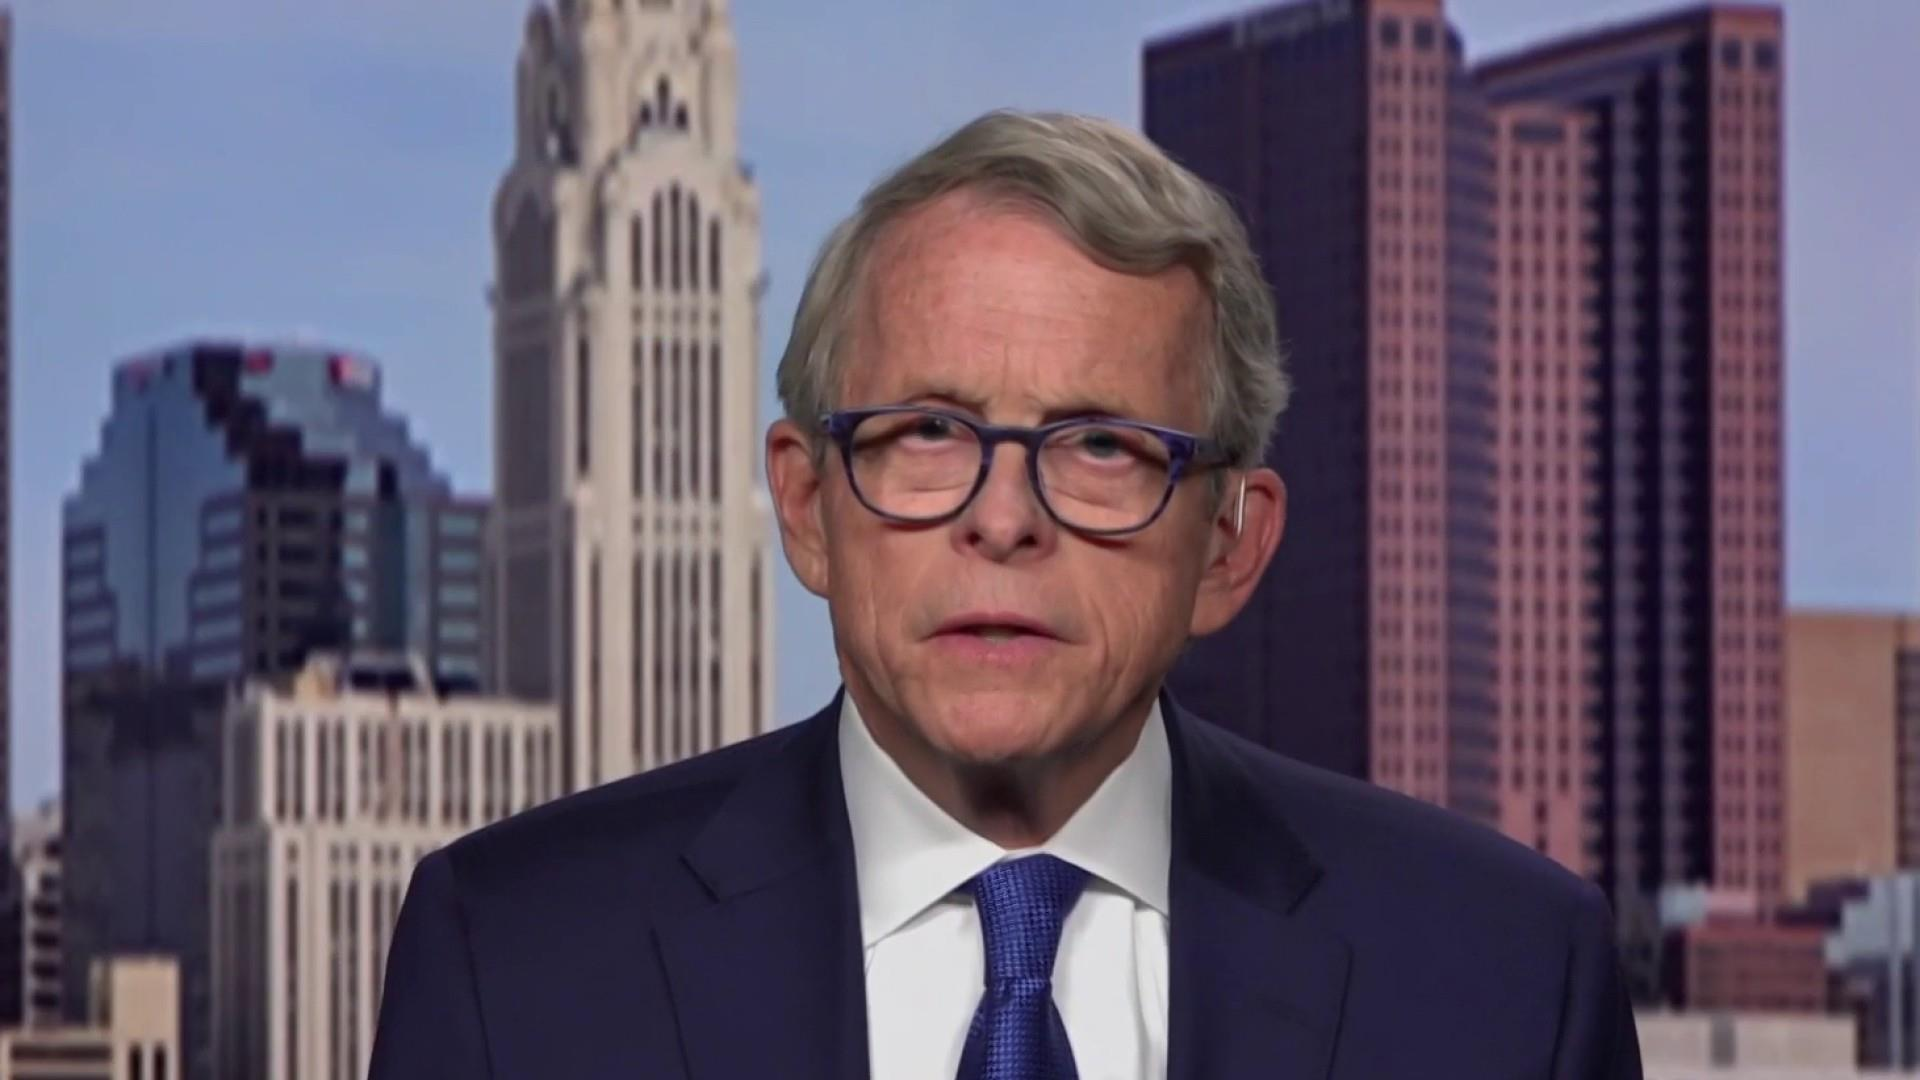 Gov. DeWine discusses 'tangible' gun control measures in Ohio